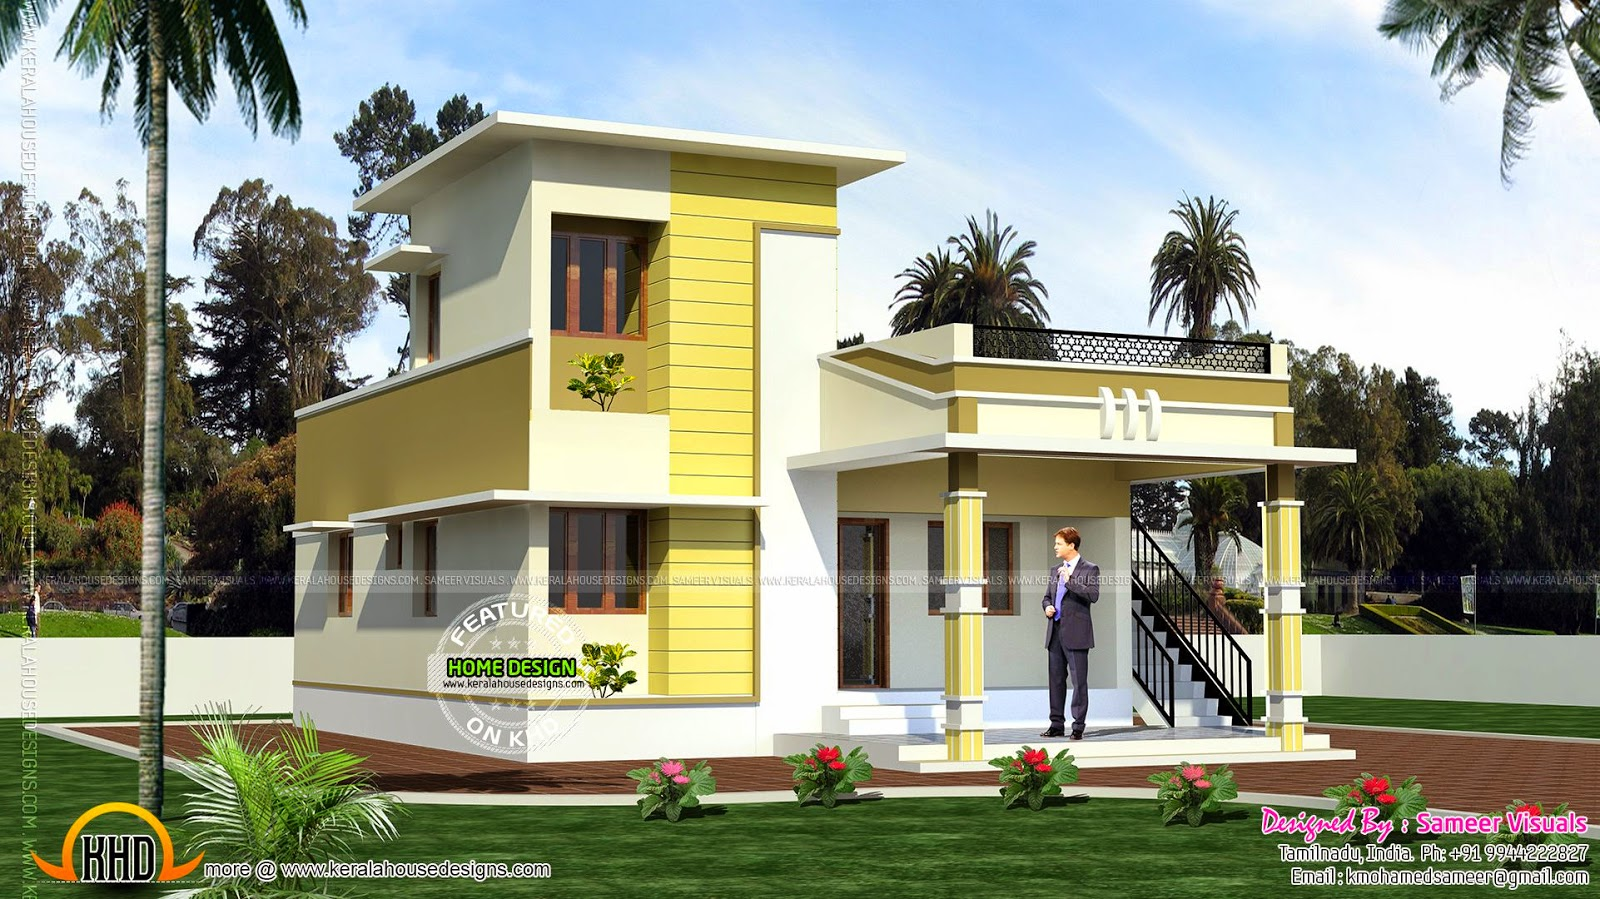 Single storied tamilnadu home kerala home design and for Home designs in tamilnadu